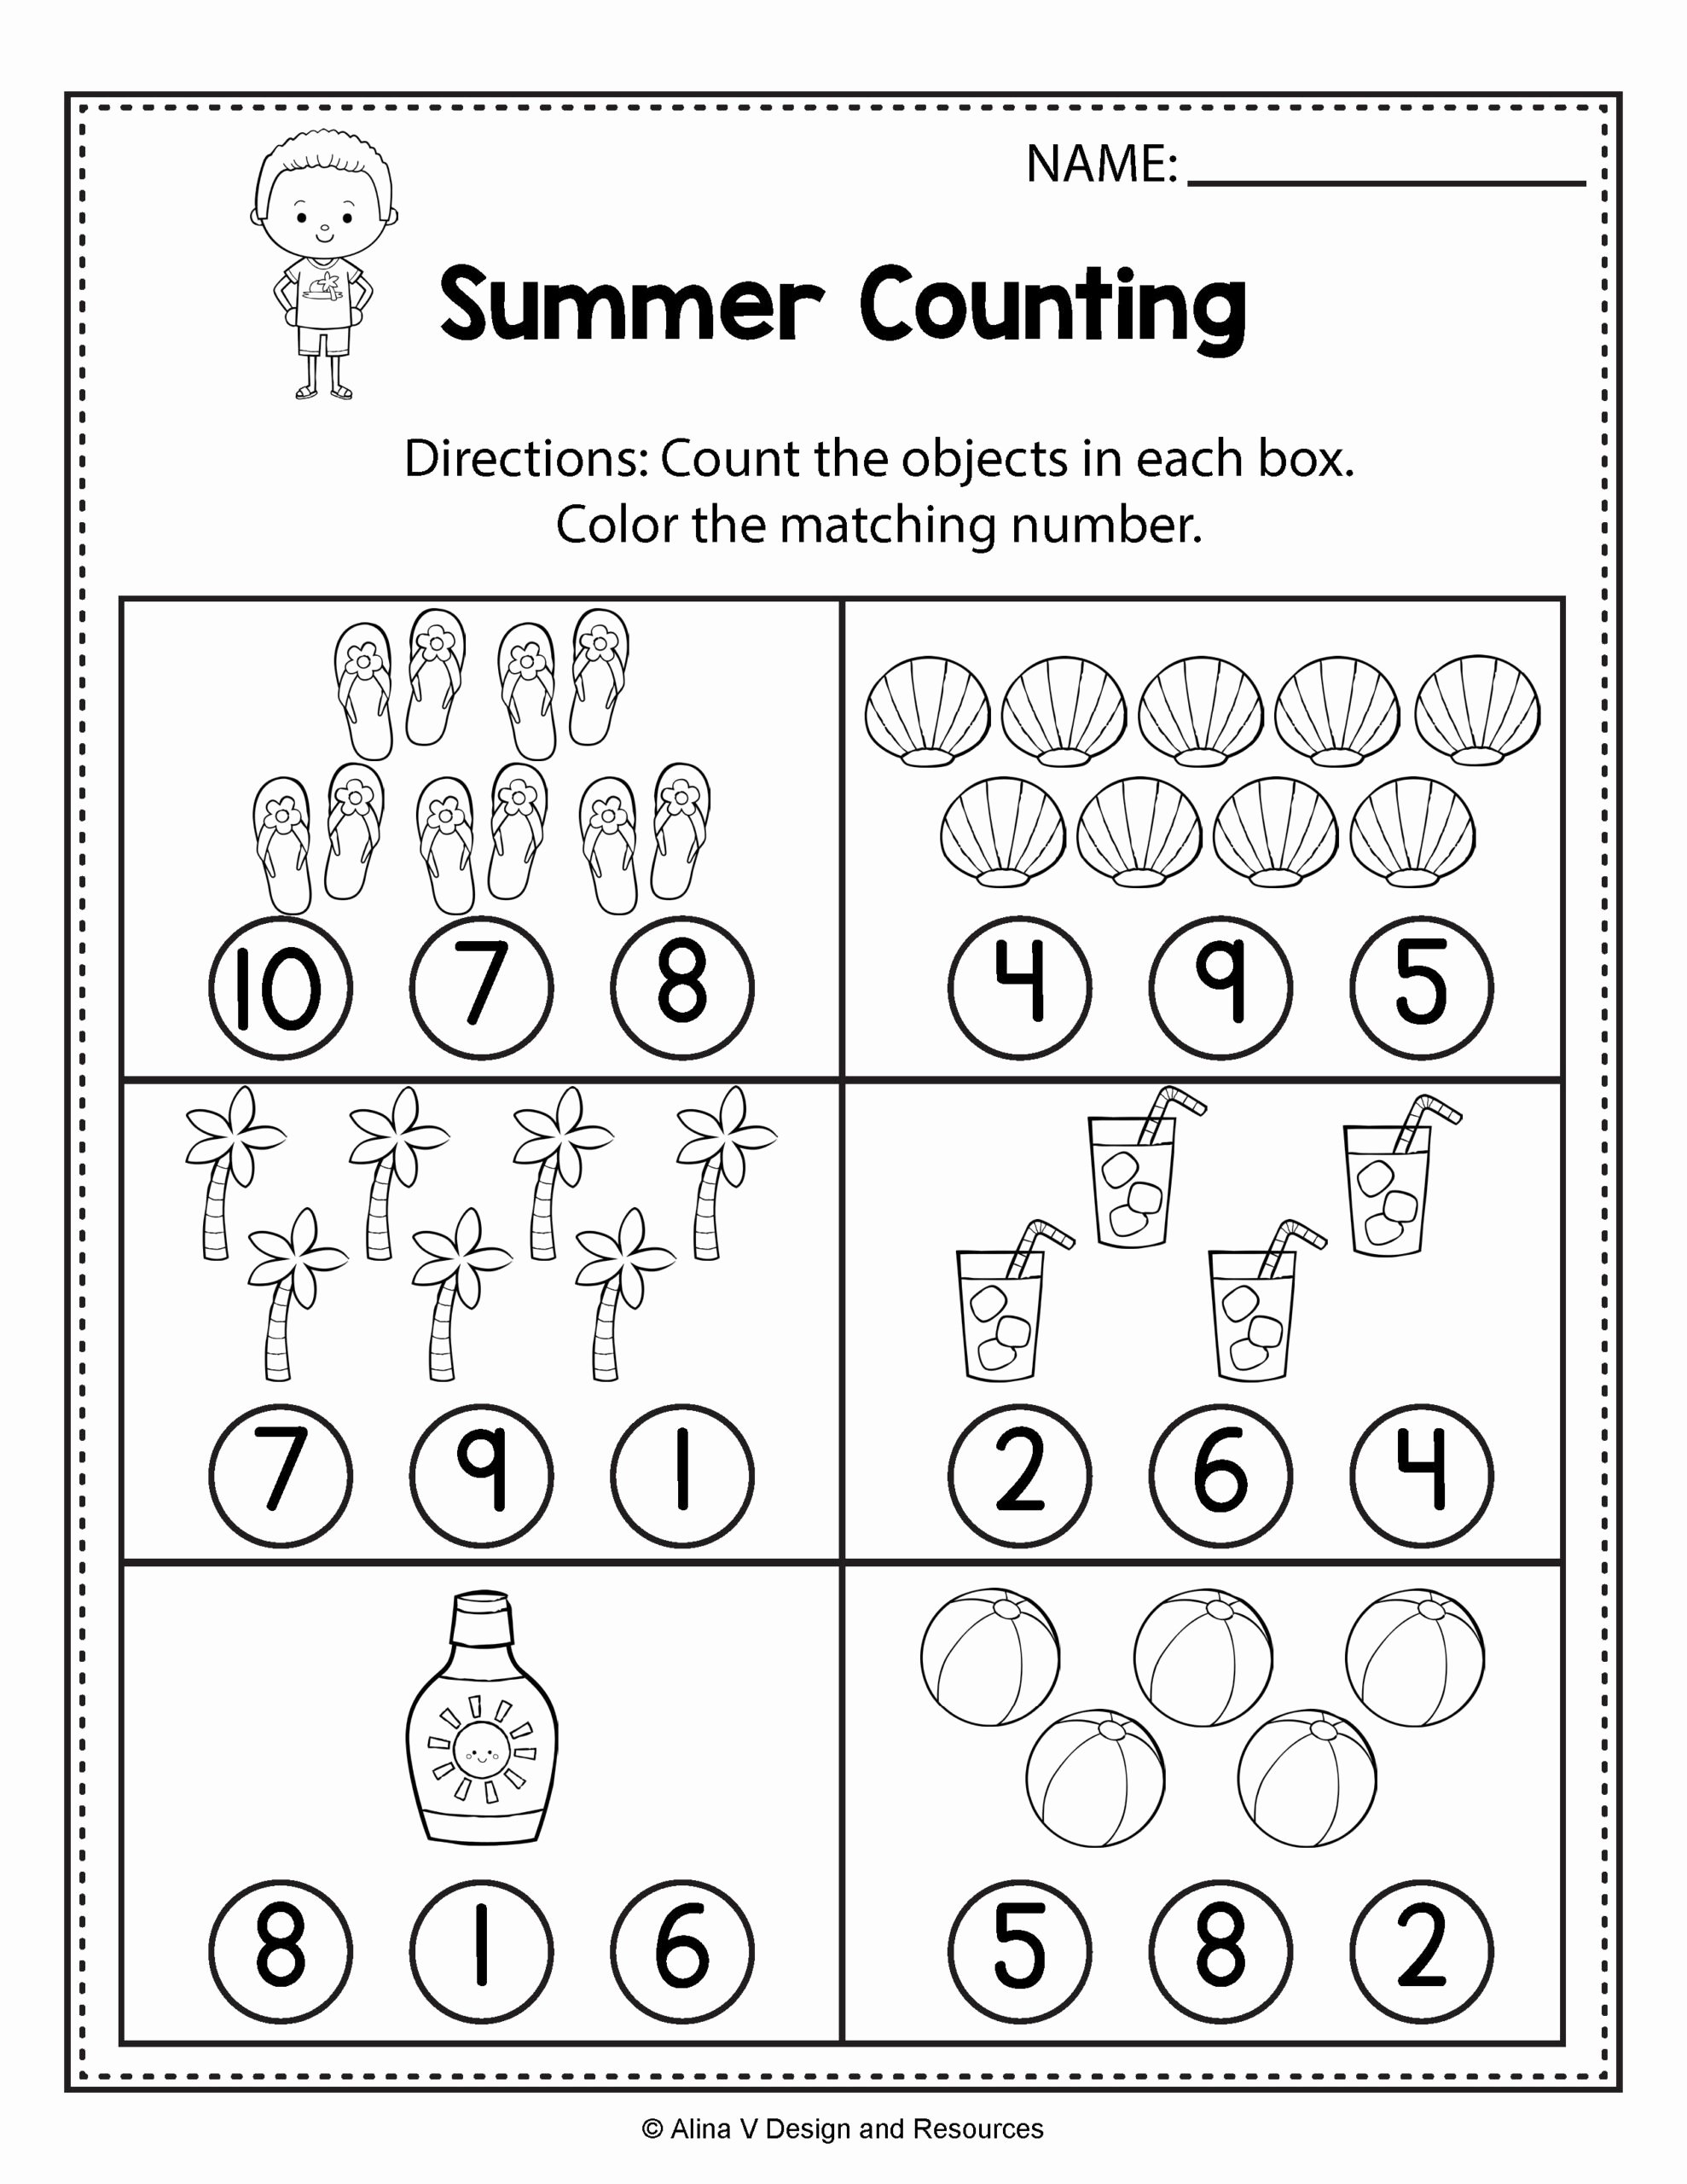 Simple Worksheets for Preschoolers Inspirational Counting Worksheets Summer Math and Activities for Preschool